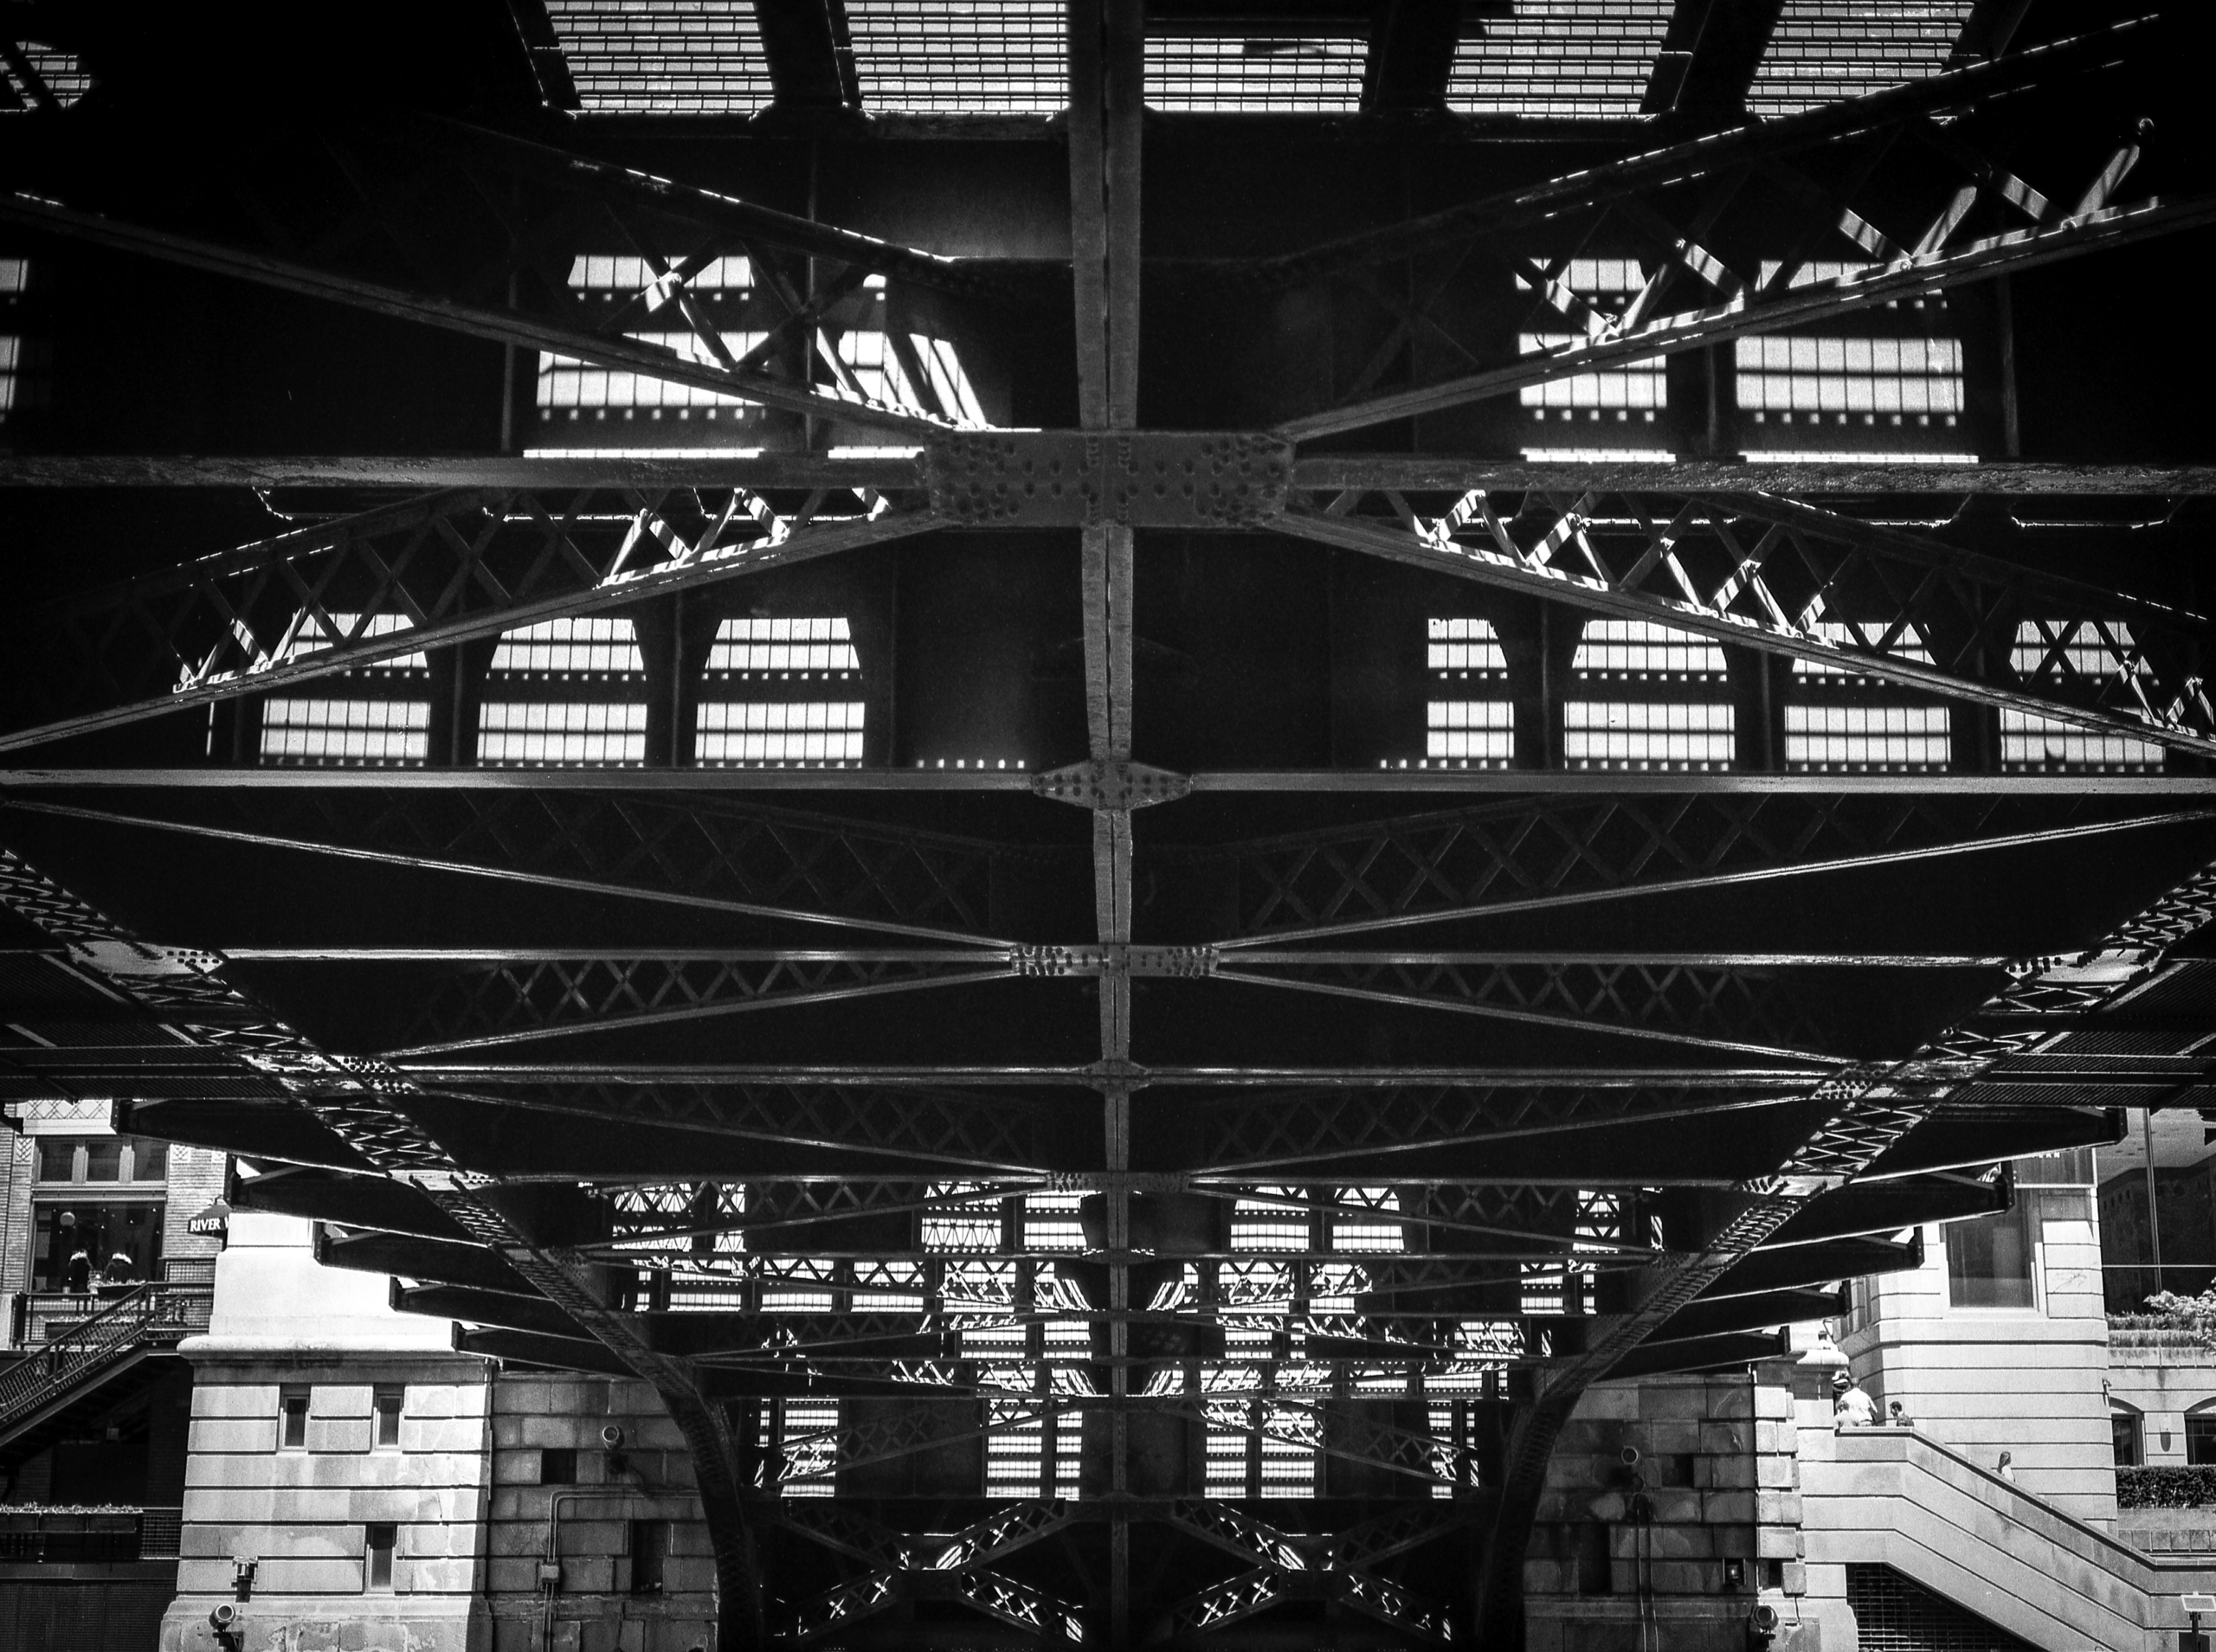 Chicago river bridge underside  - junwin | ello